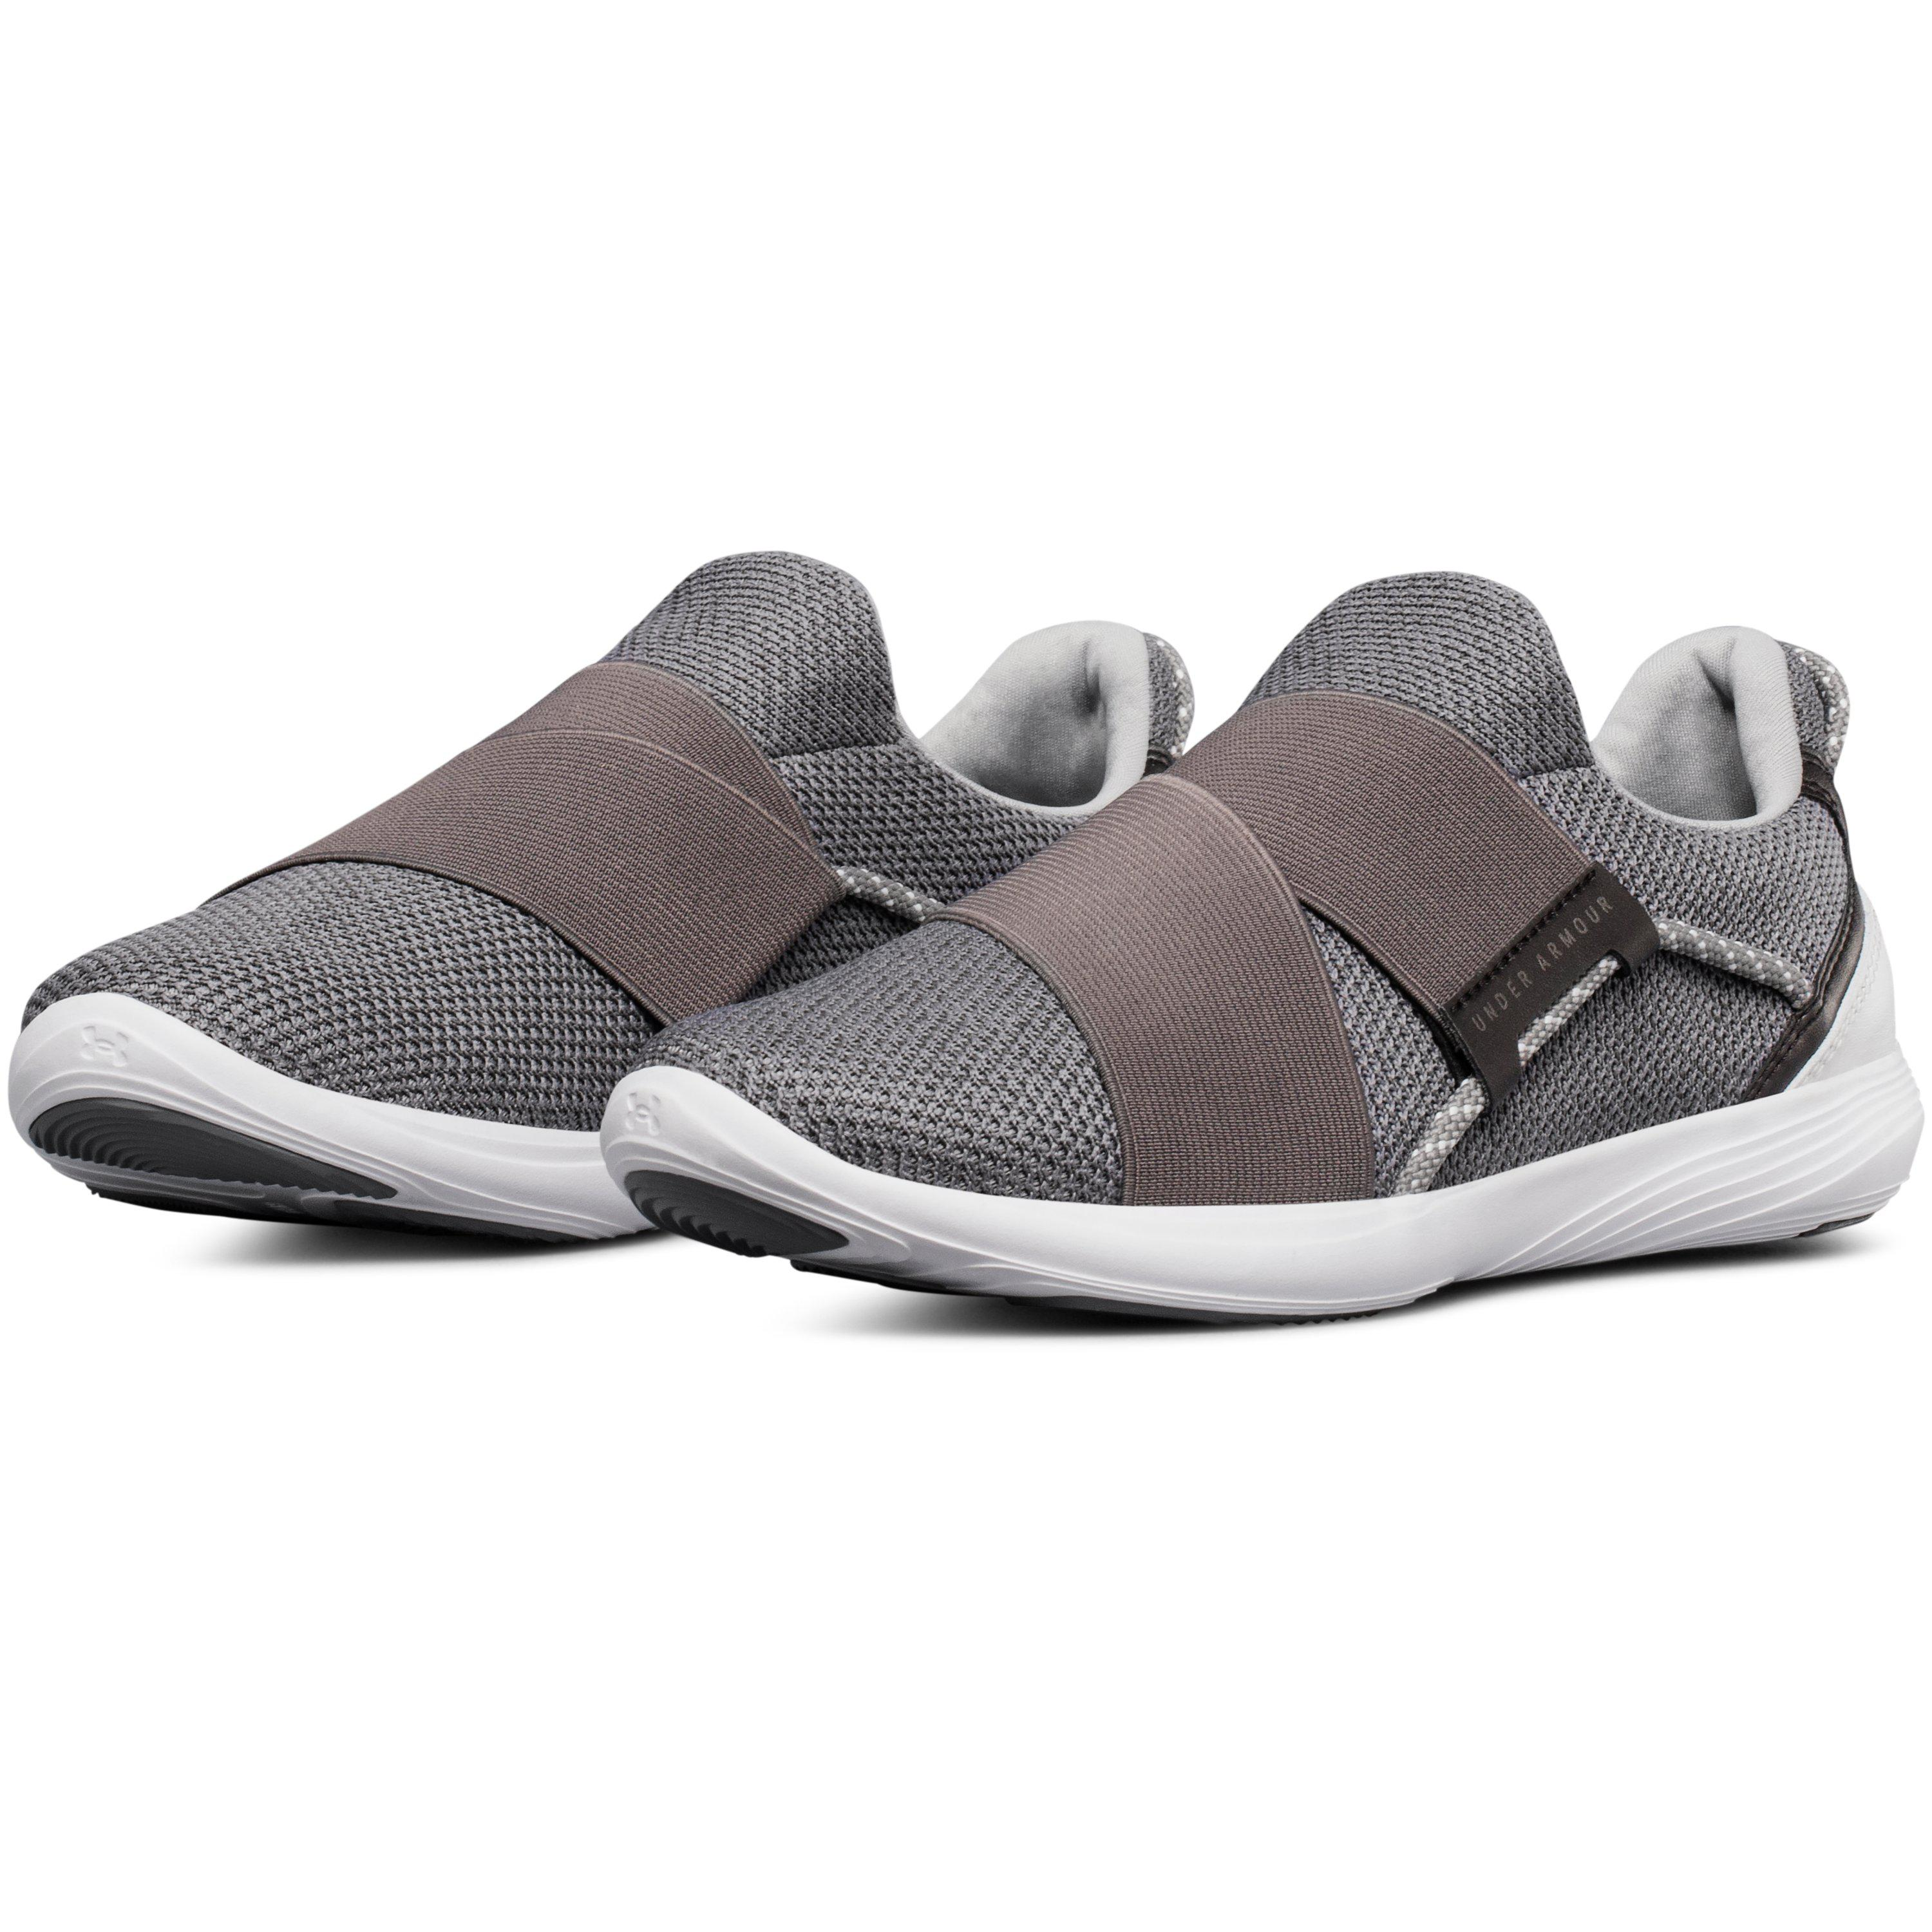 d13aa2fef0167 Lyst - Under Armour Women s Ua Precision X Training Shoes in Gray